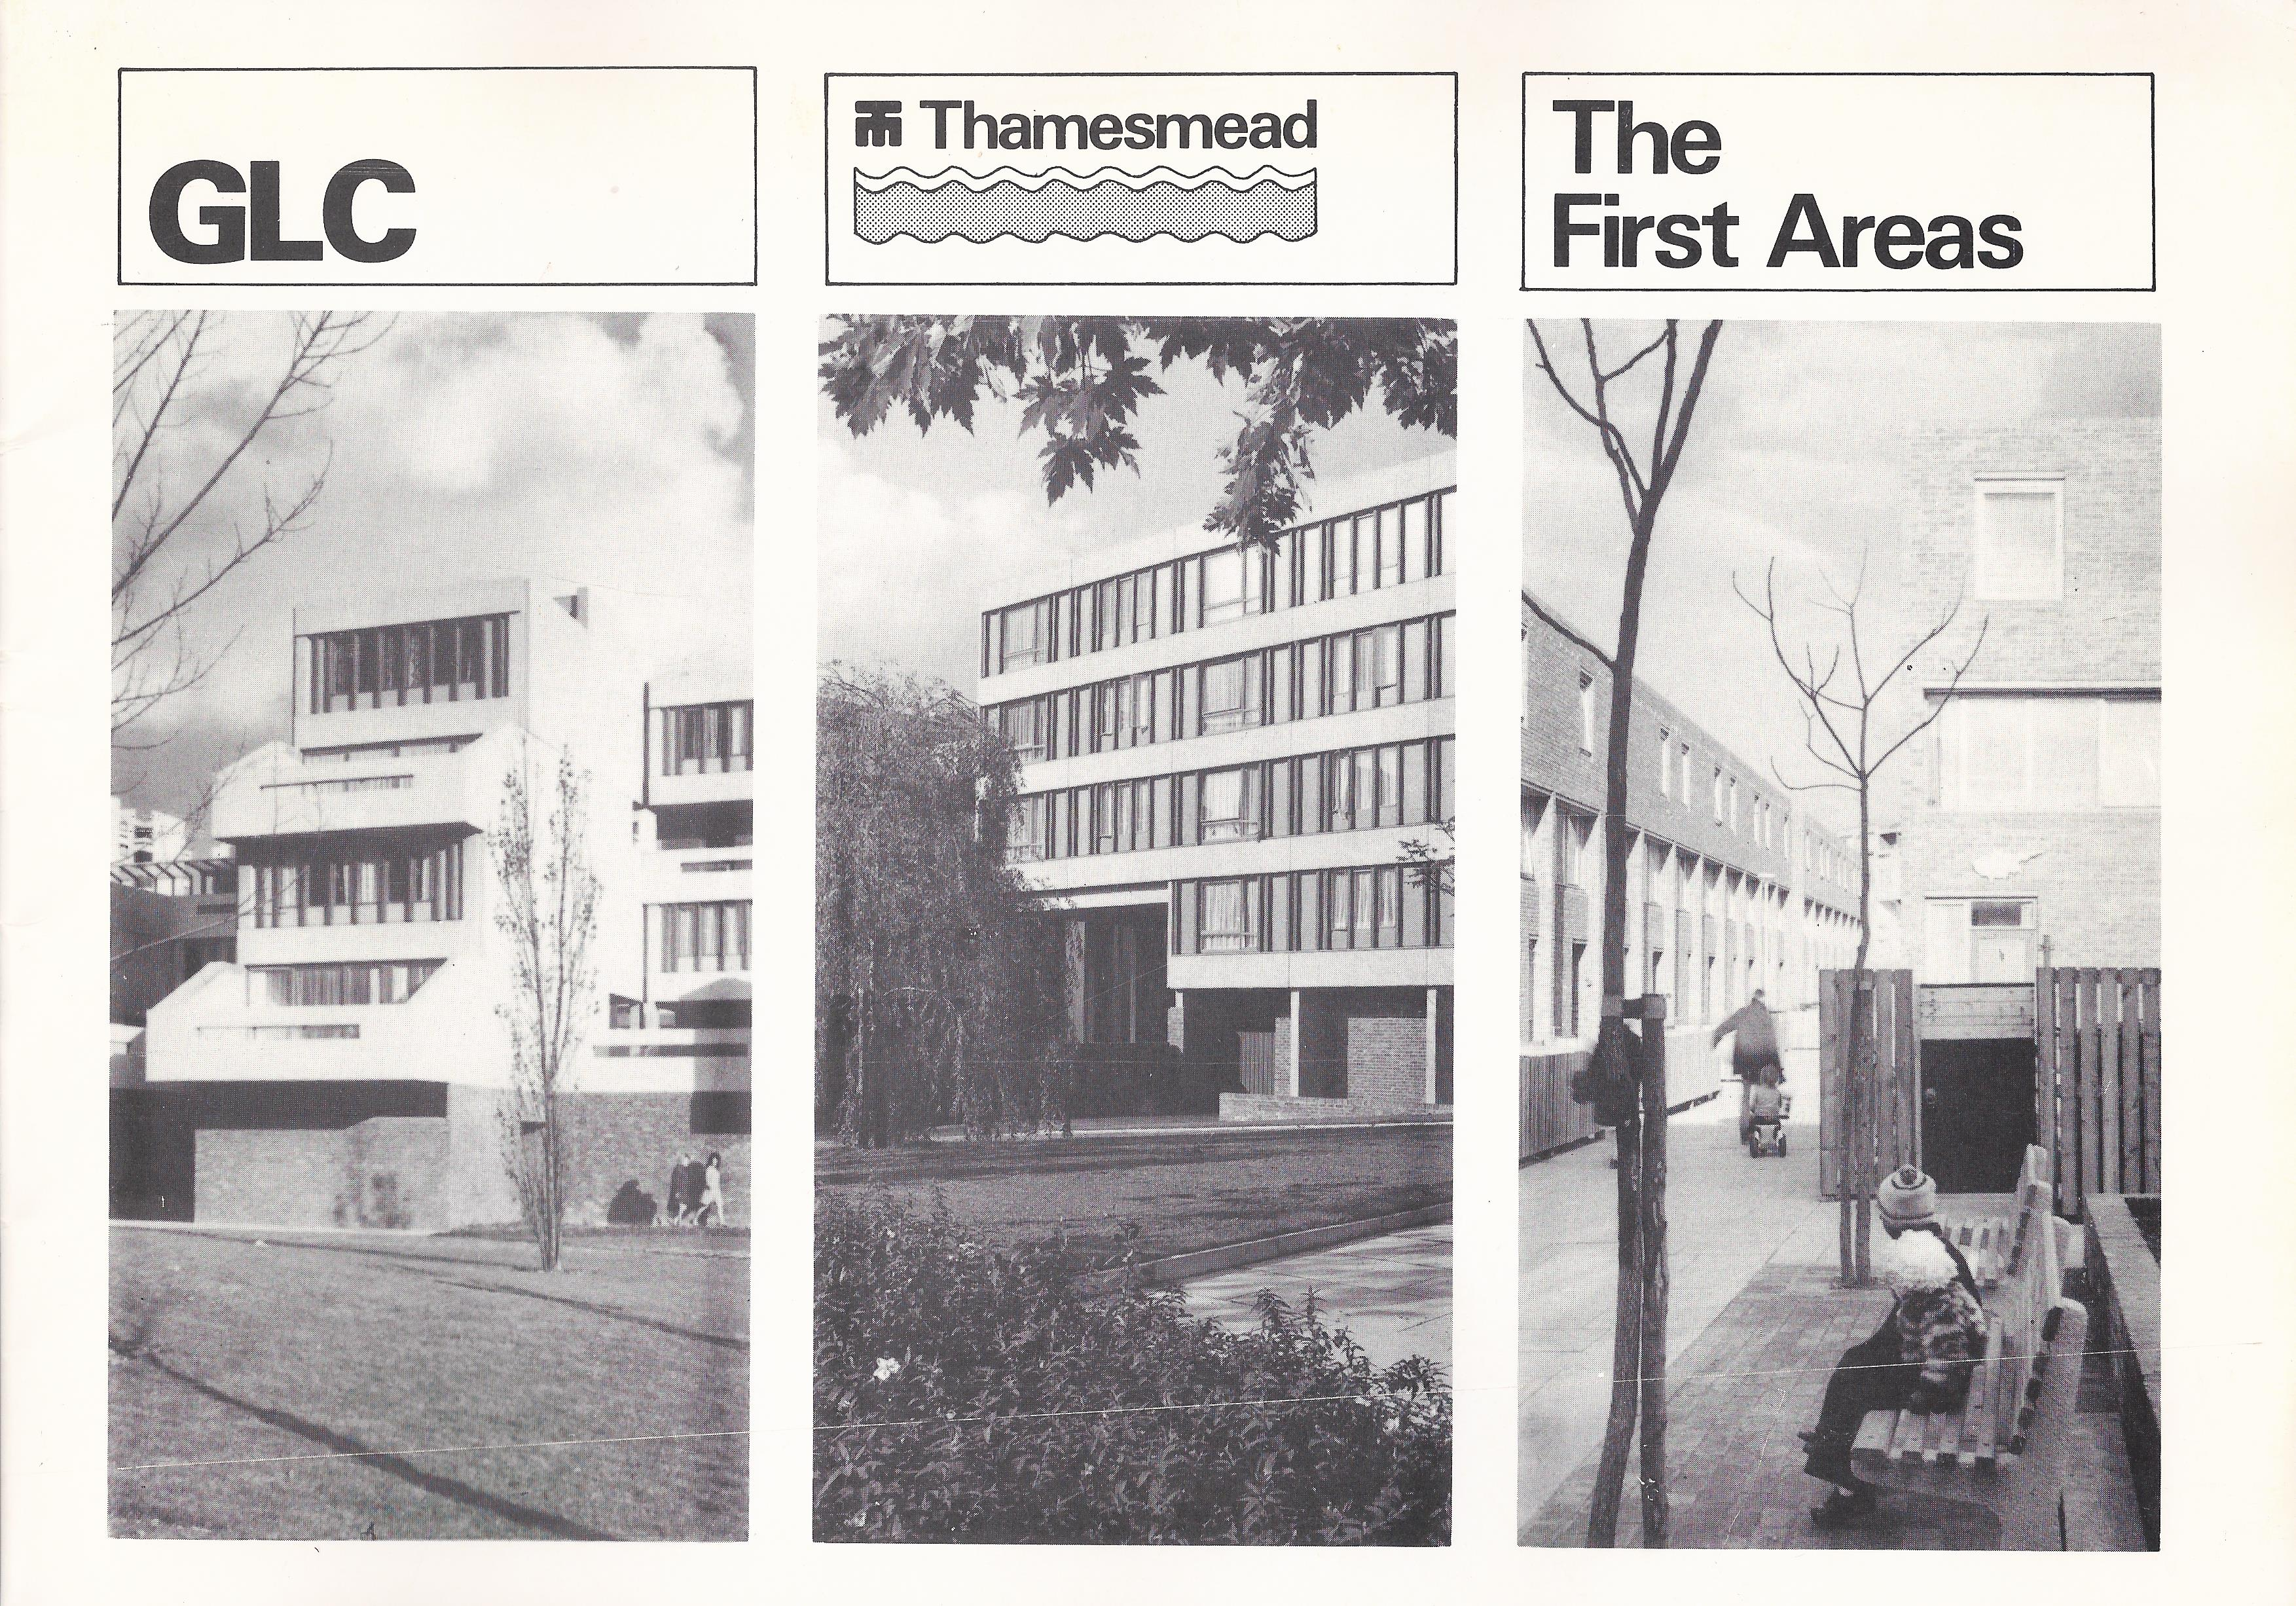 thamesmead first areas book cover